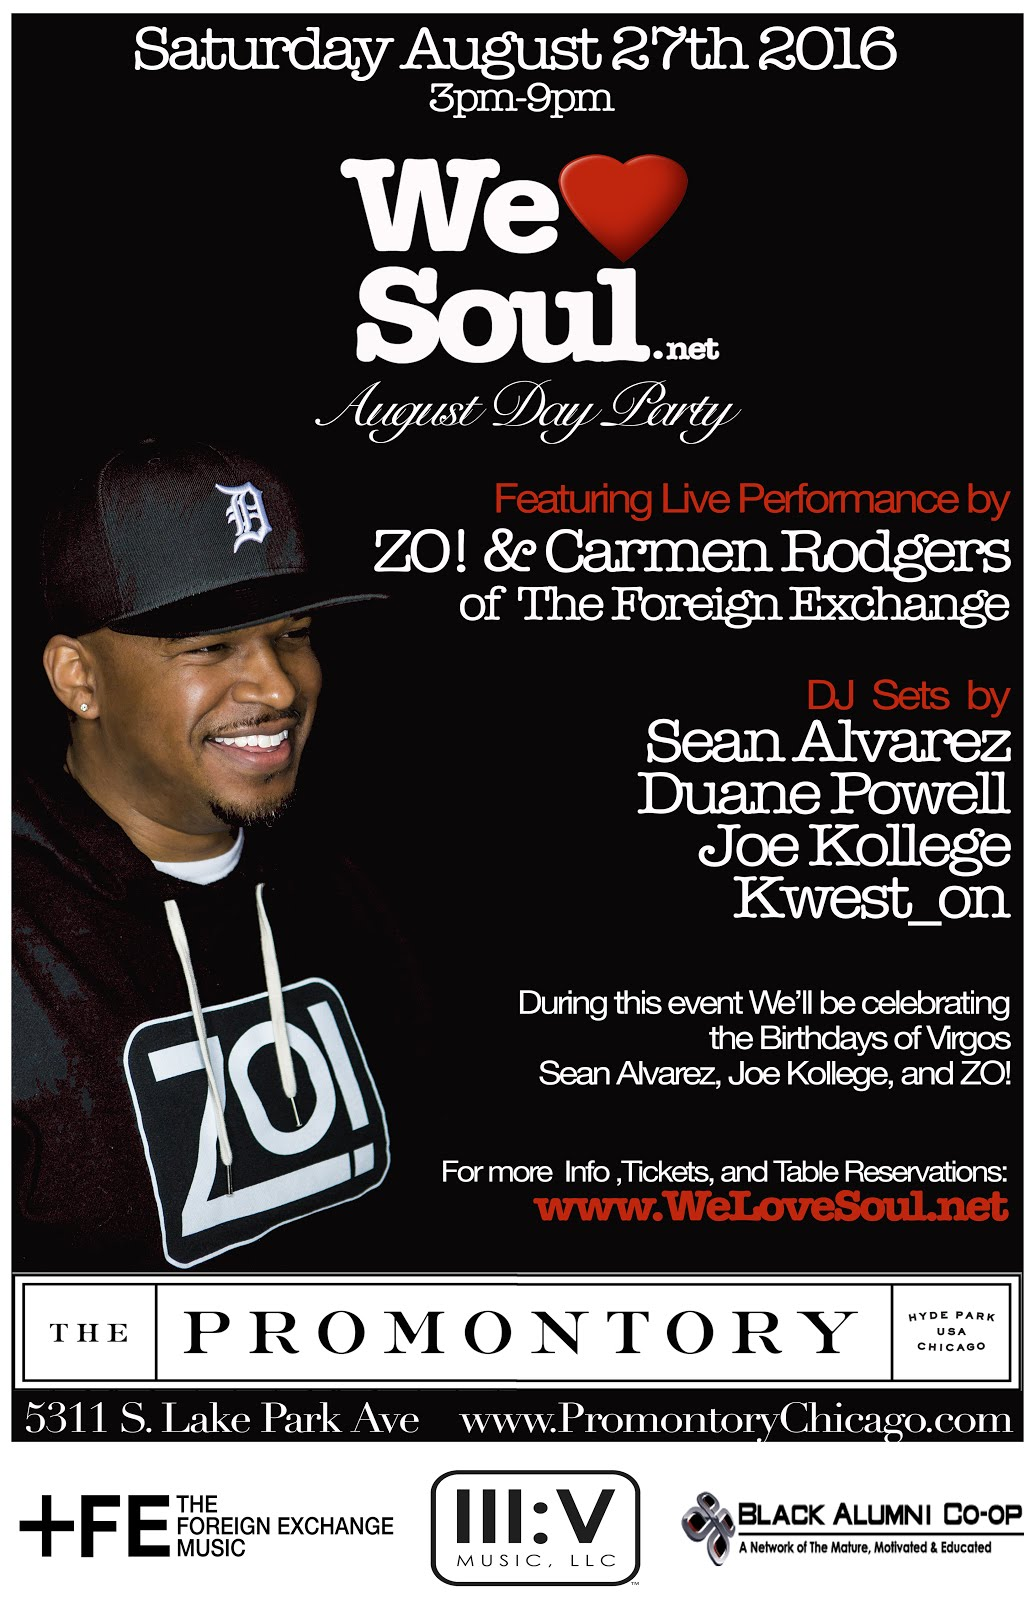 Sat Aug. 27th: We Love Soul August Day Party feat. ZO! & Carmen Rodgers LIVE!!!